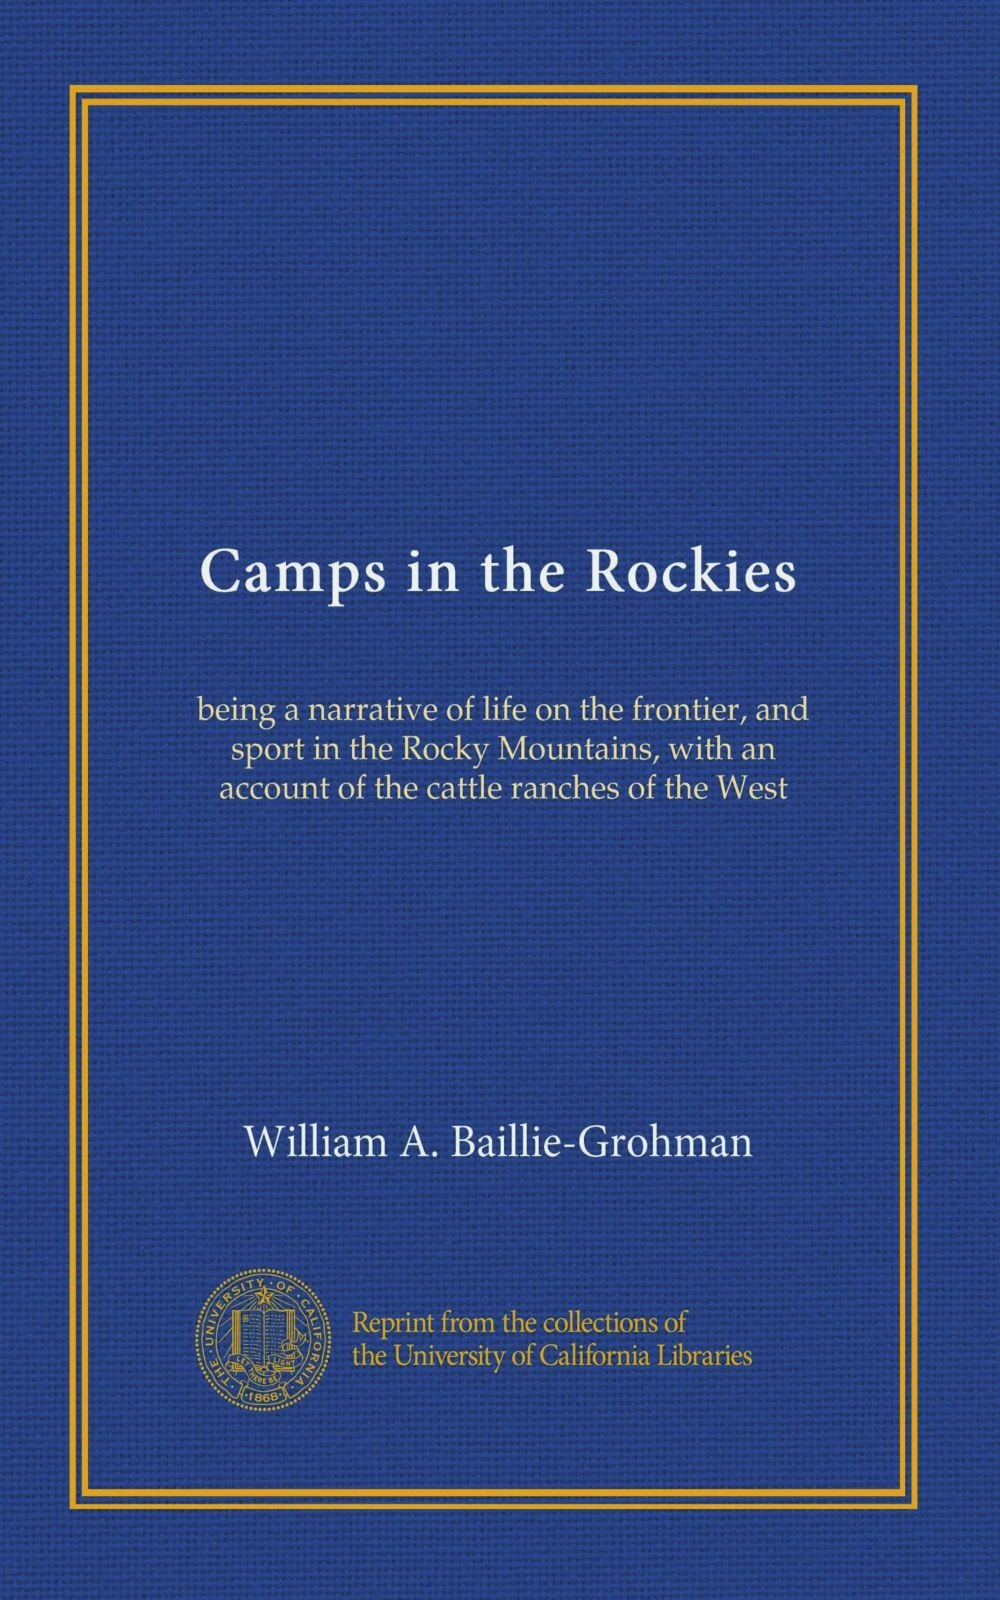 Download Camps in the Rockies: being a narrative of life on the frontier, and sport in the Rocky Mountains, with an account of the cattle ranches of the West pdf